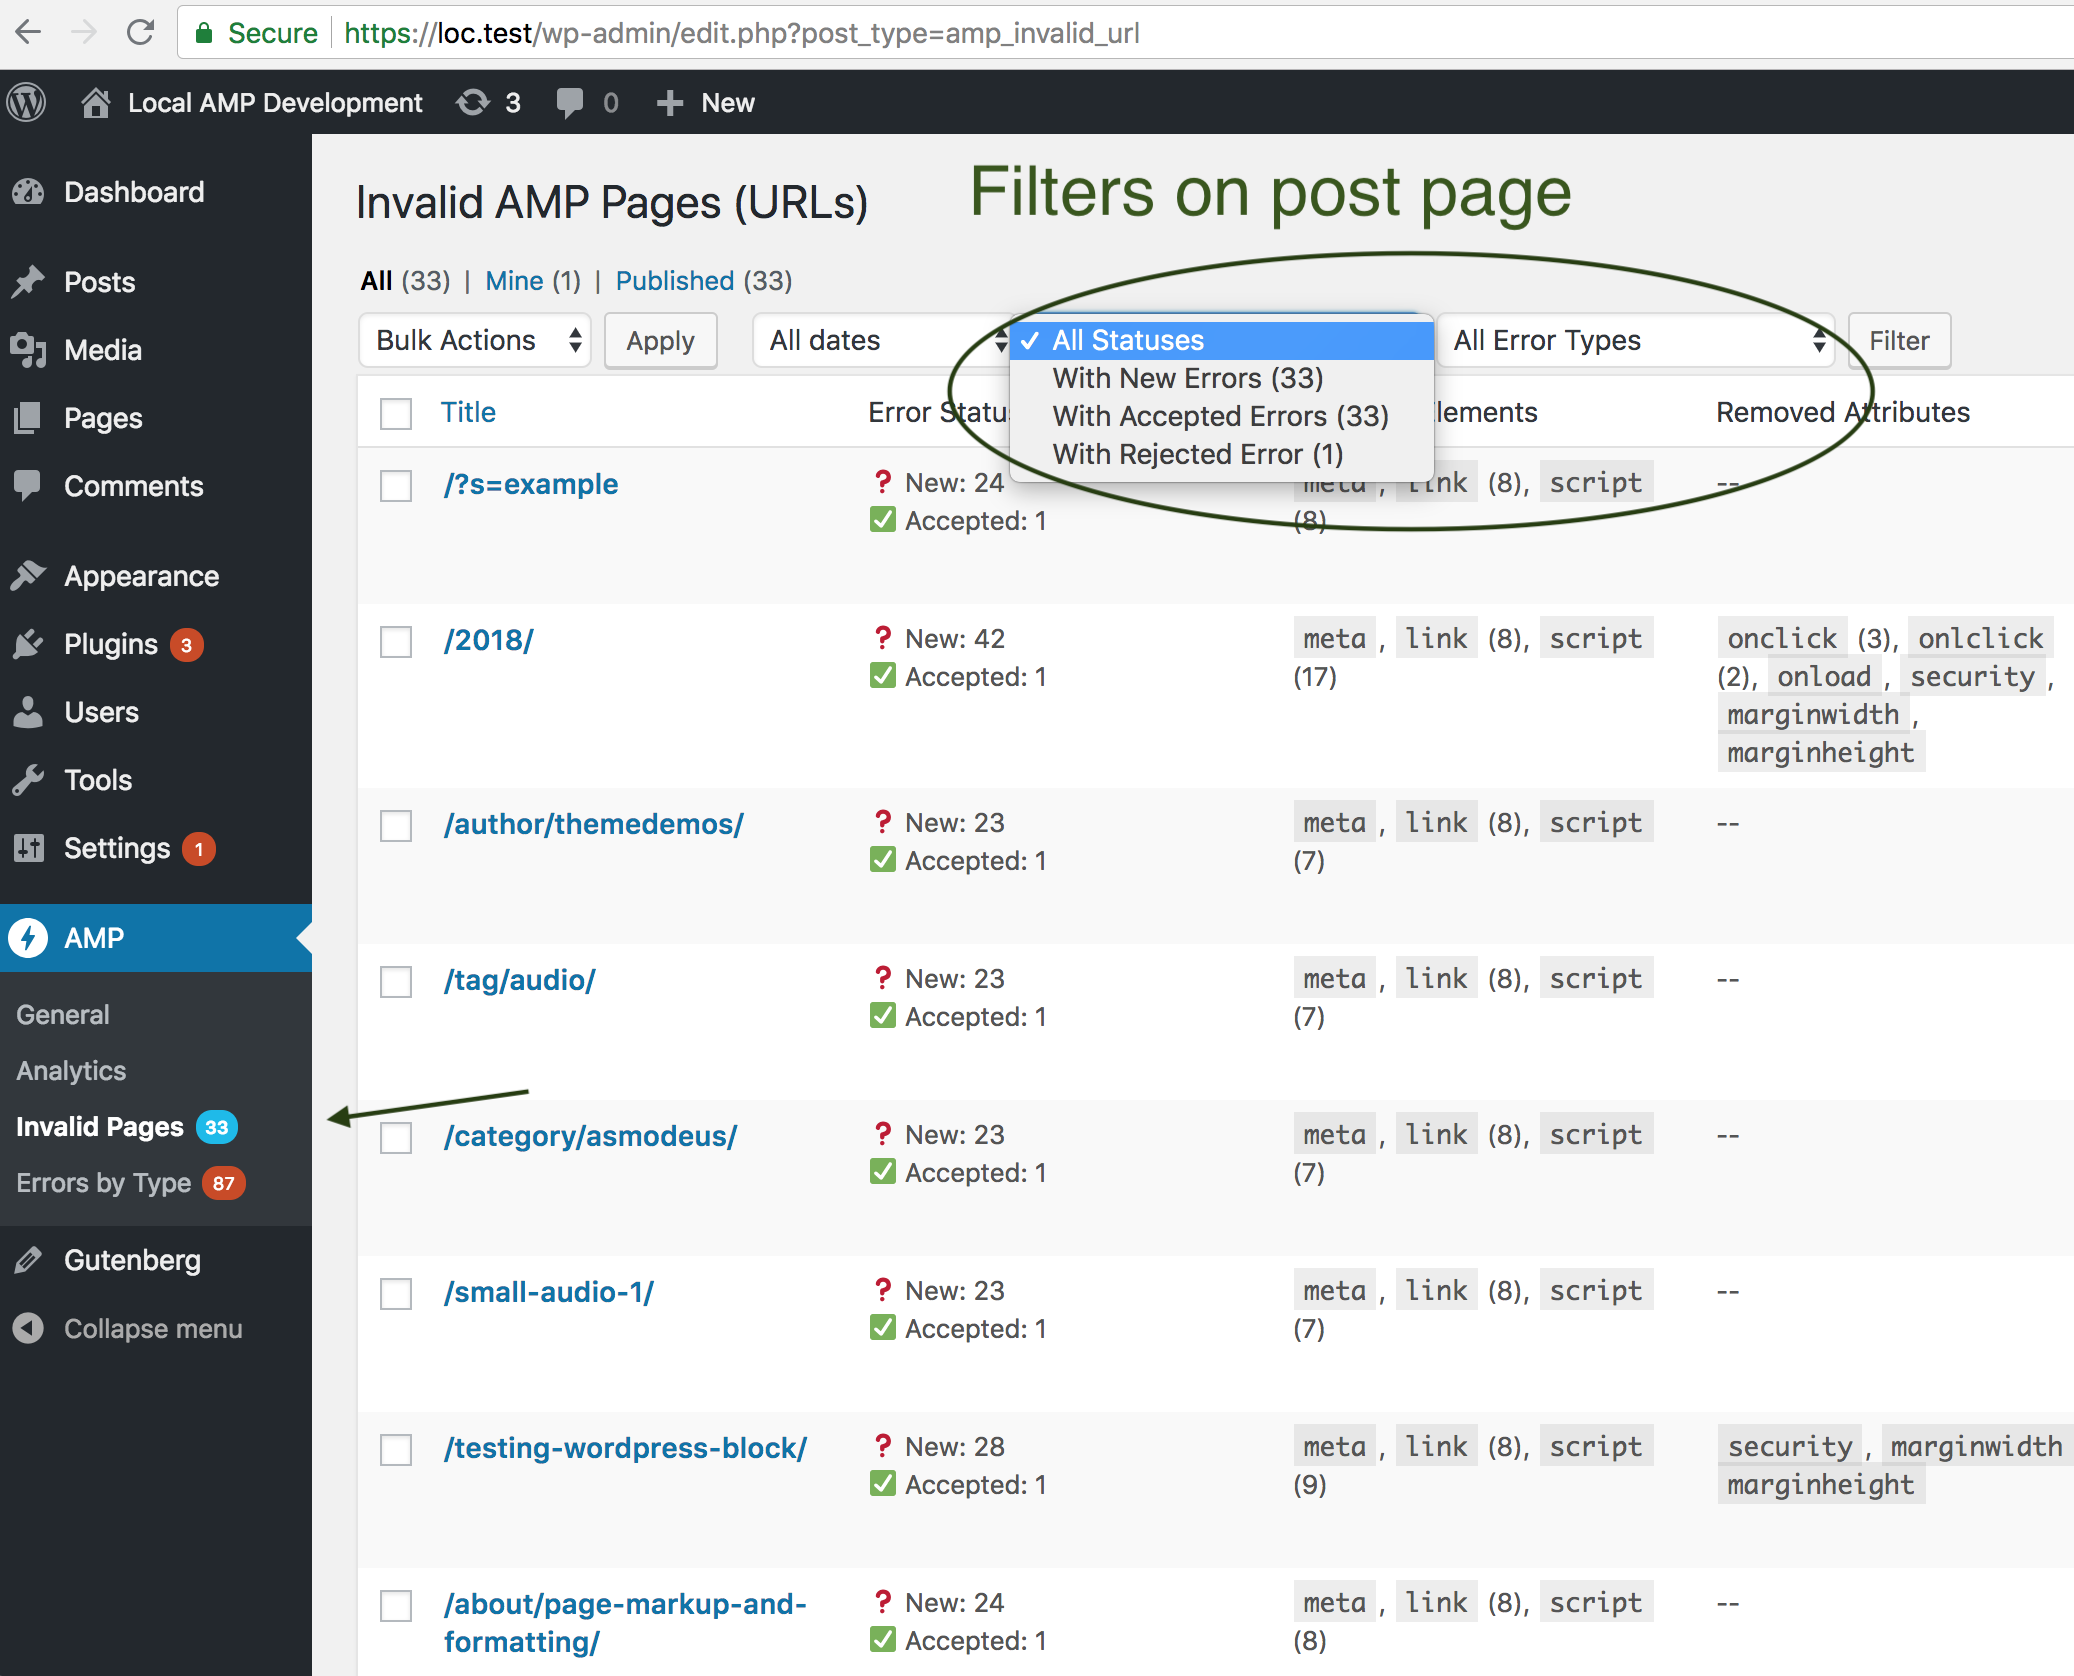 filters-on-post-page